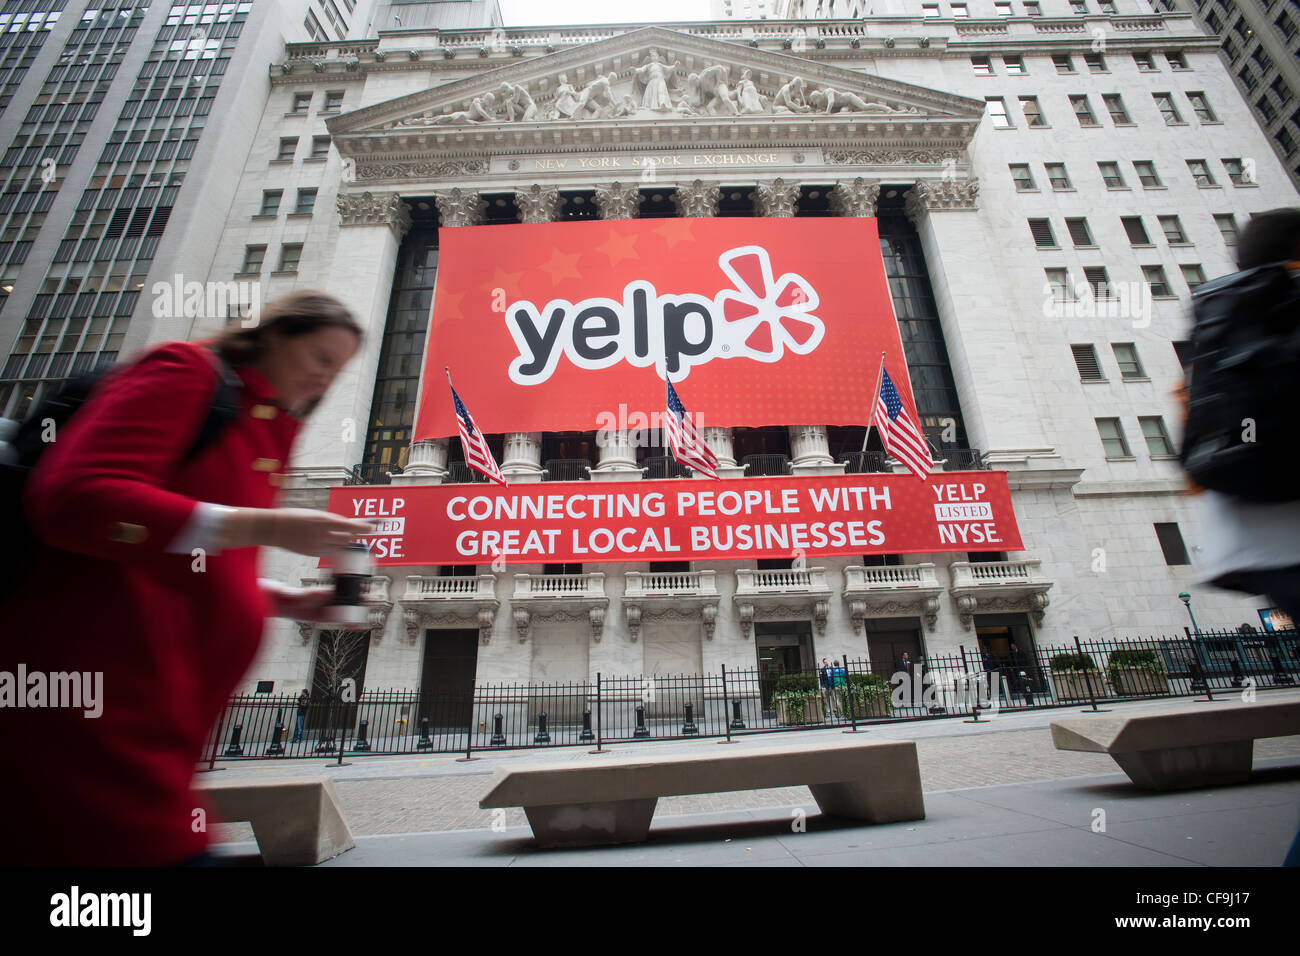 The facade of the New York Stock Exchange decorated in honor of the initial public offering of Yelp - Stock Image